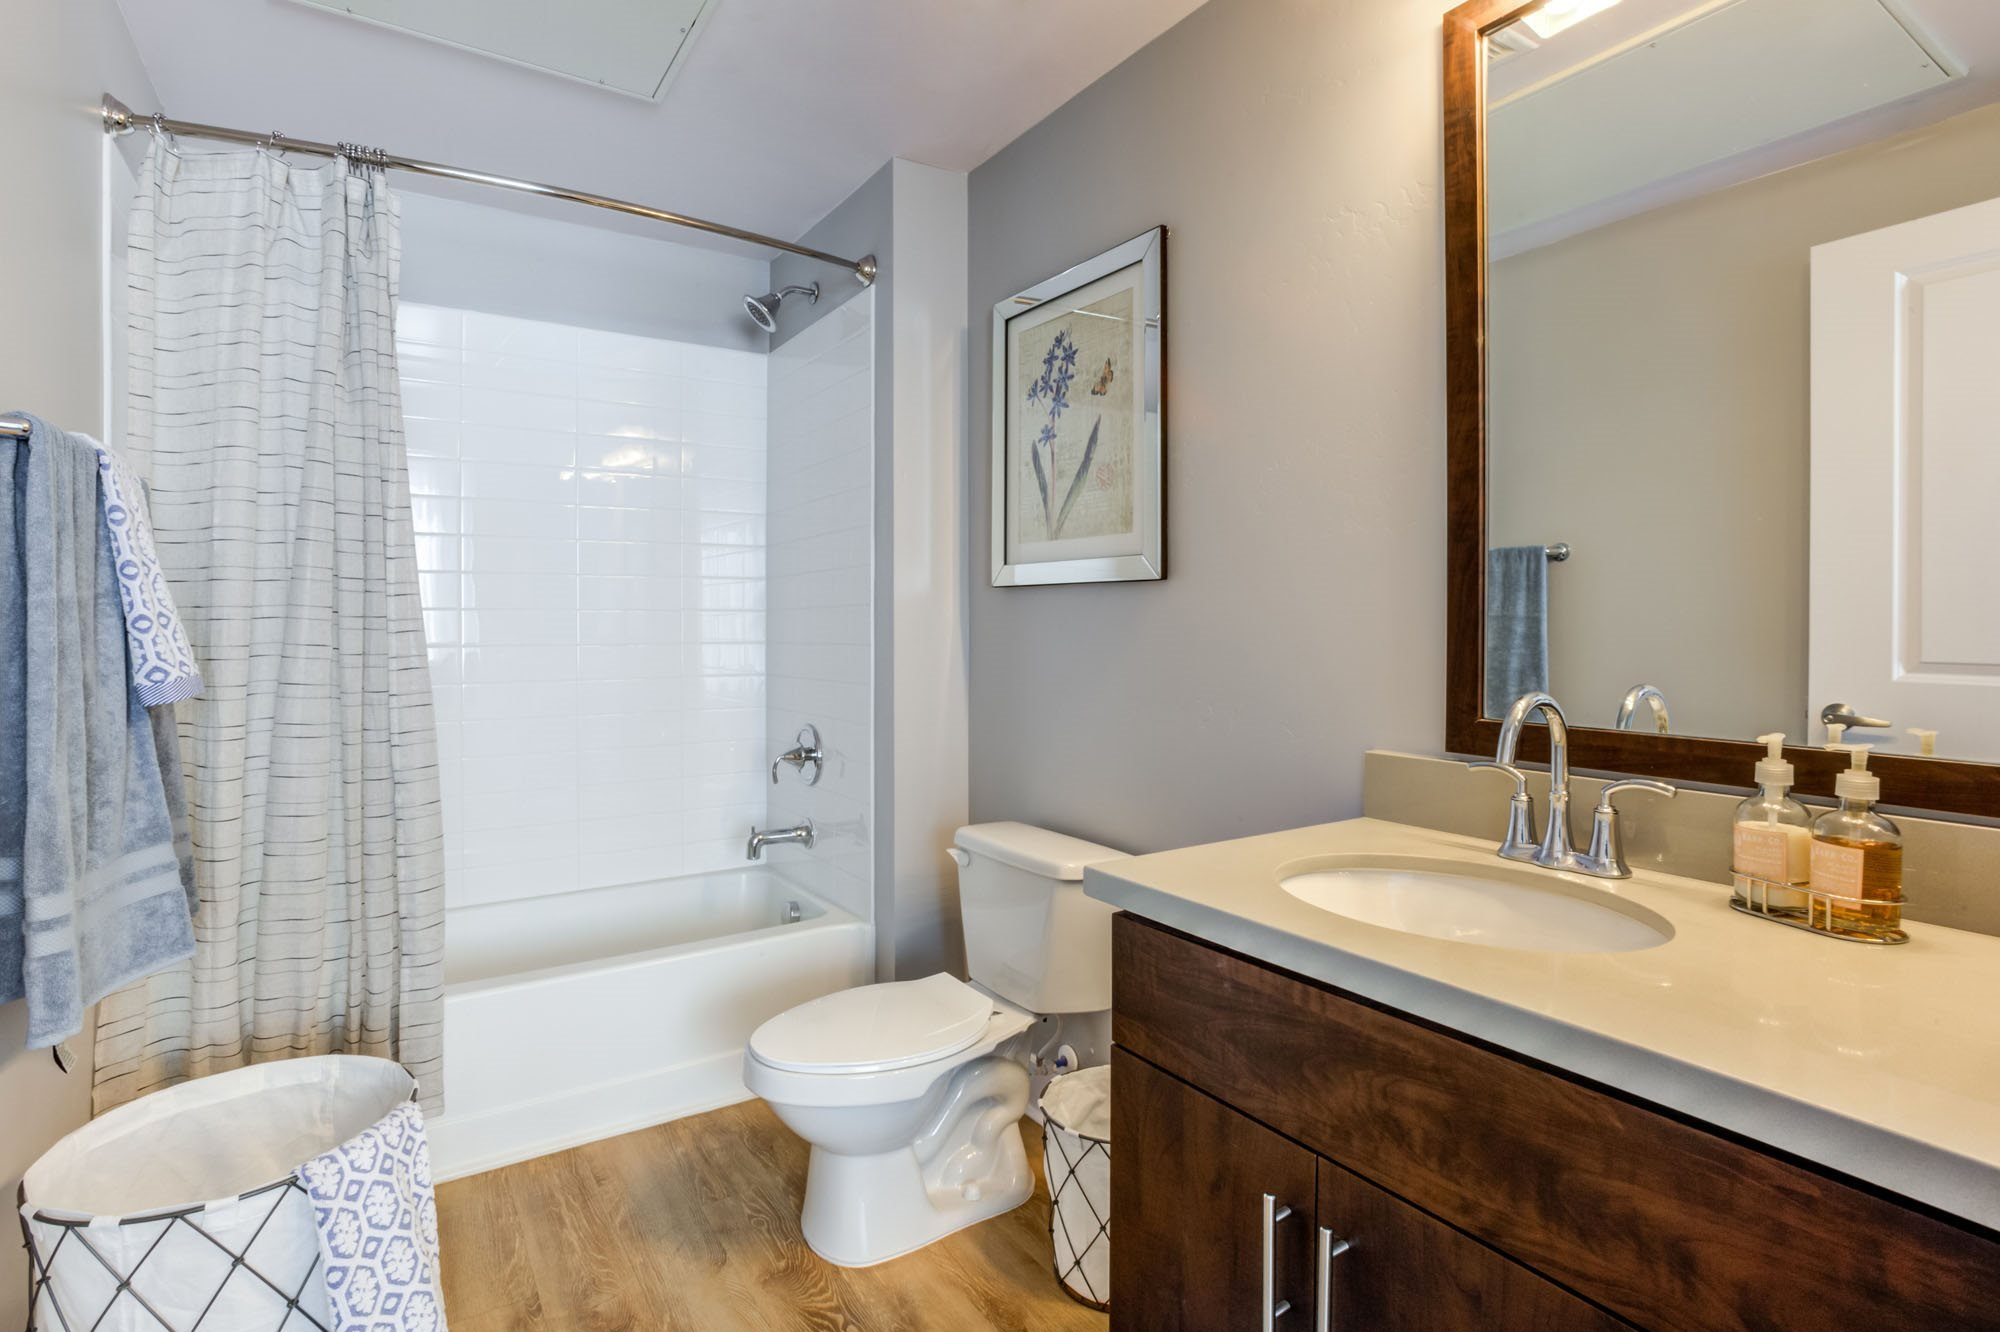 Apartments in Phoenix -Biltmore at Camelback Bathroom with Hardwood Floors and Large Tub